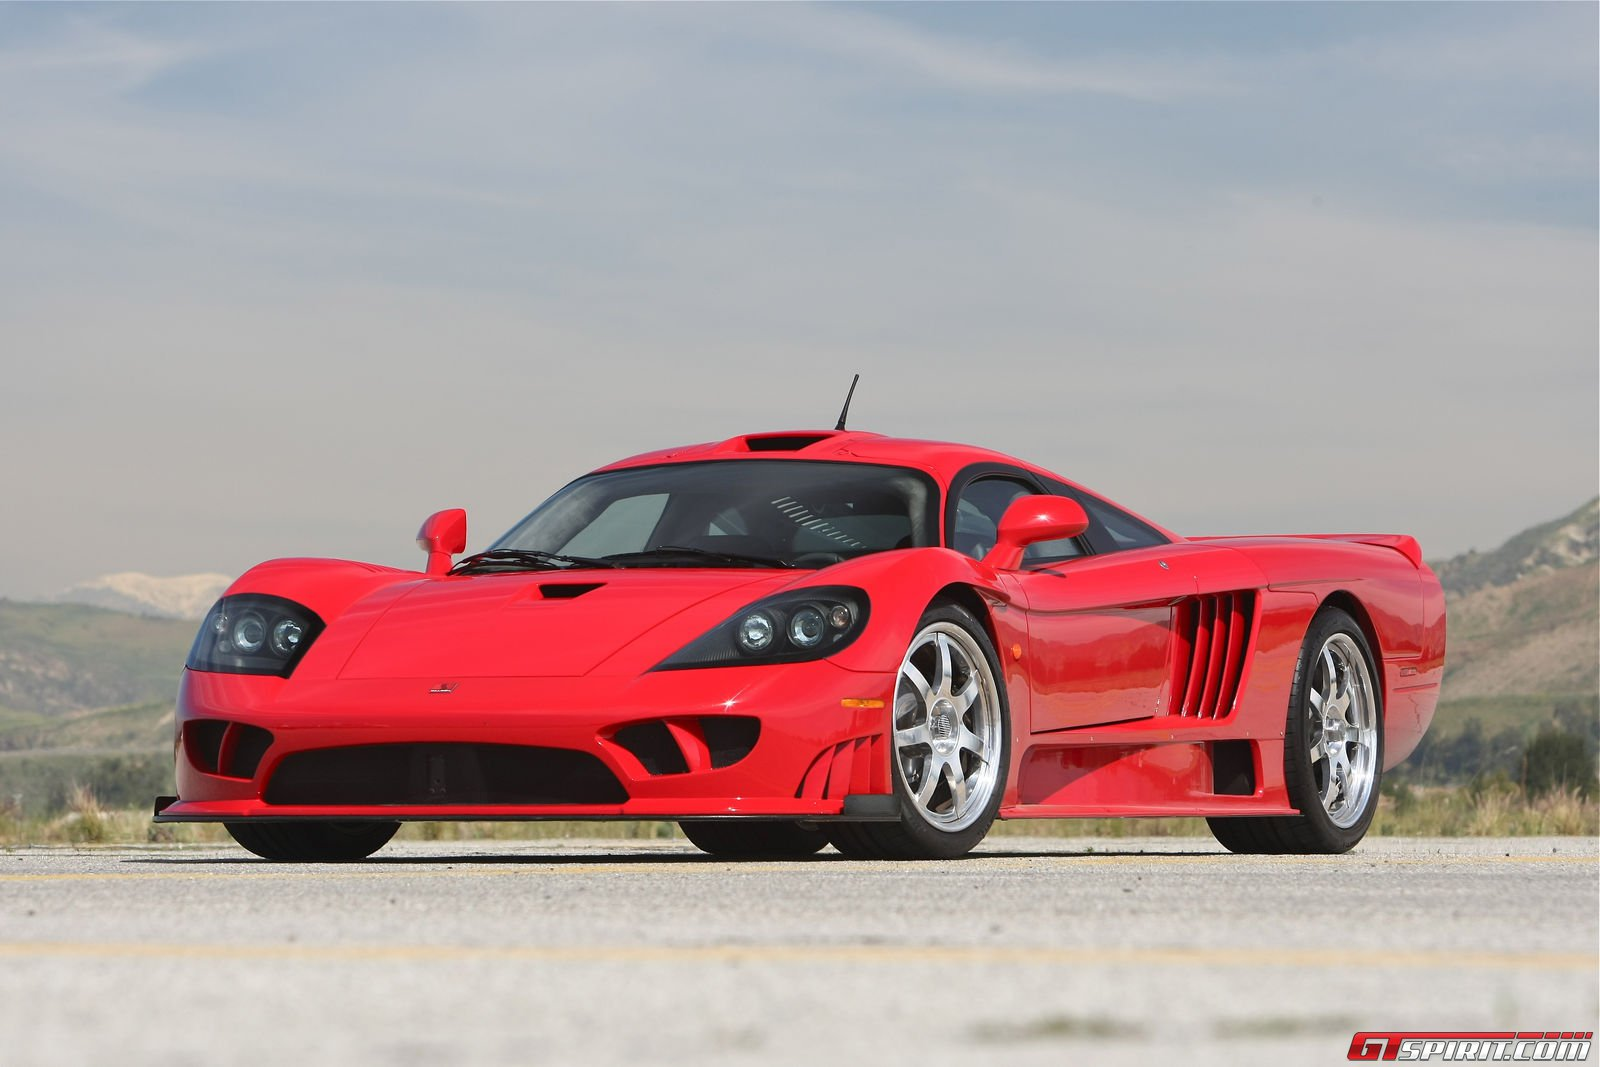 Saleen S7 For Sale >> Road Test: Saleen S7 Review